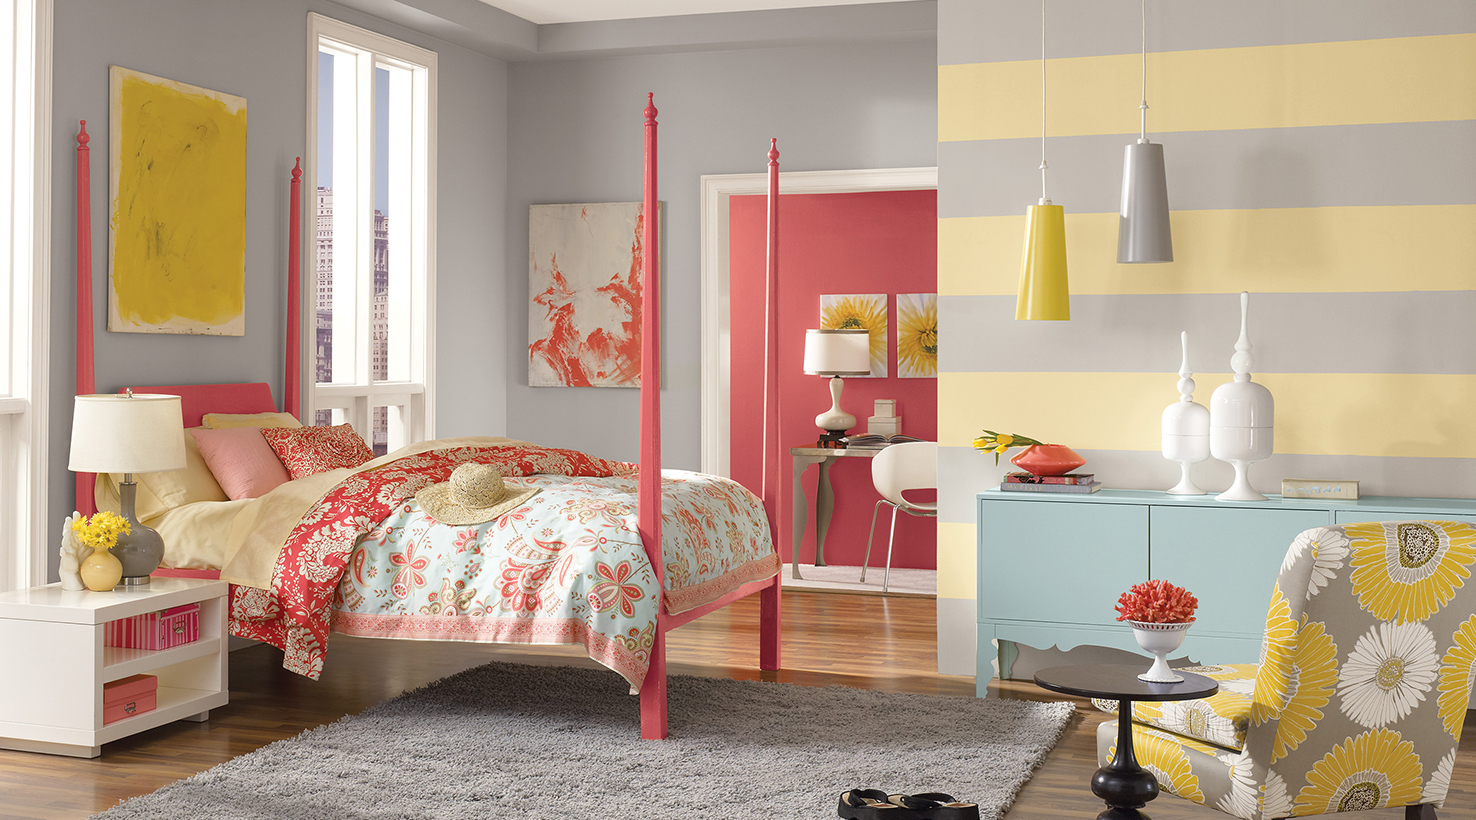 Teen room paint color ideas inspiration gallery for Room inspiration